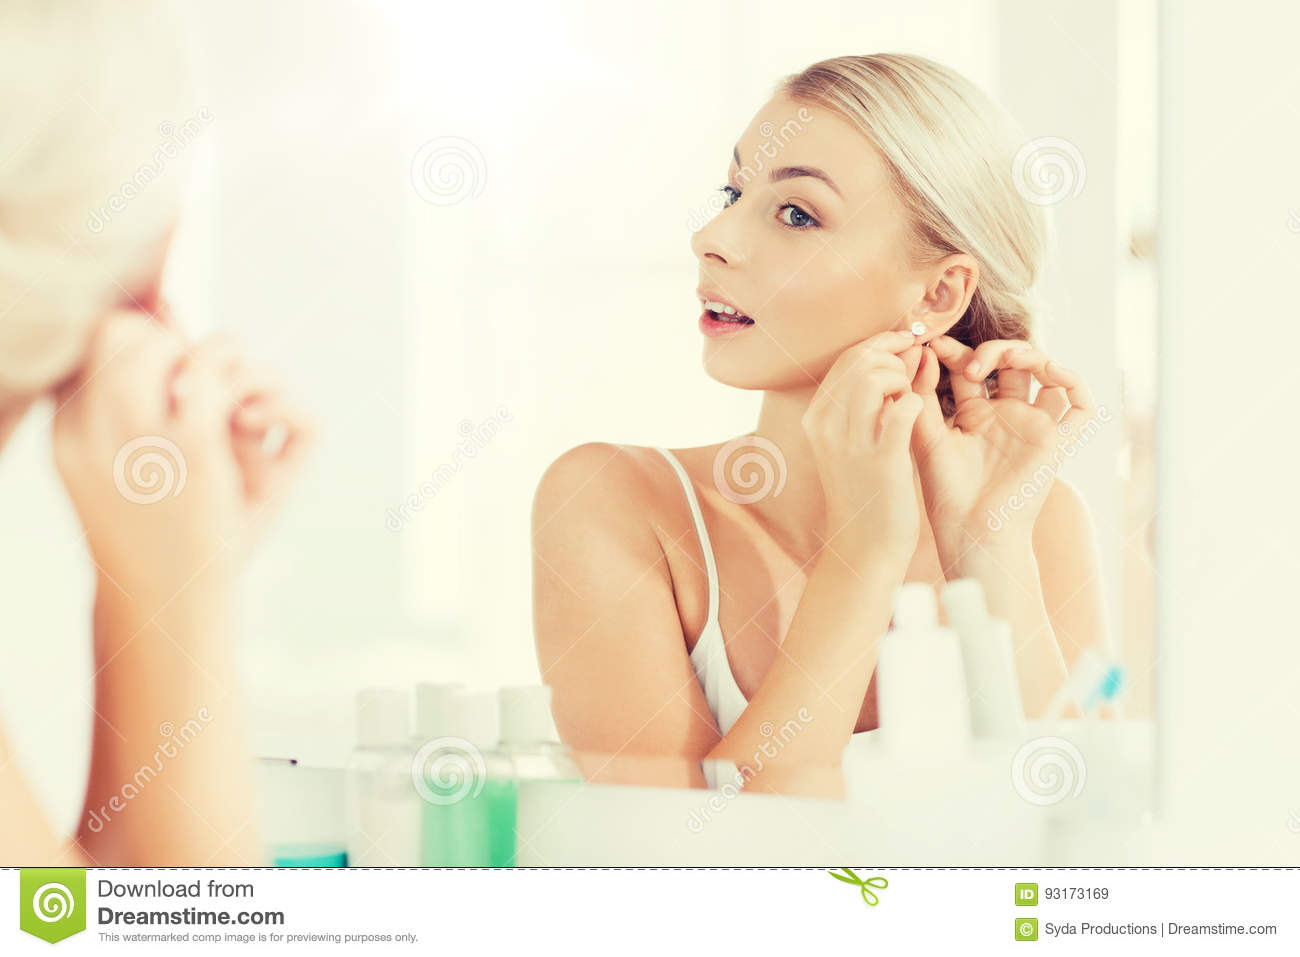 Woman trying on earring looking at bathroom mirror